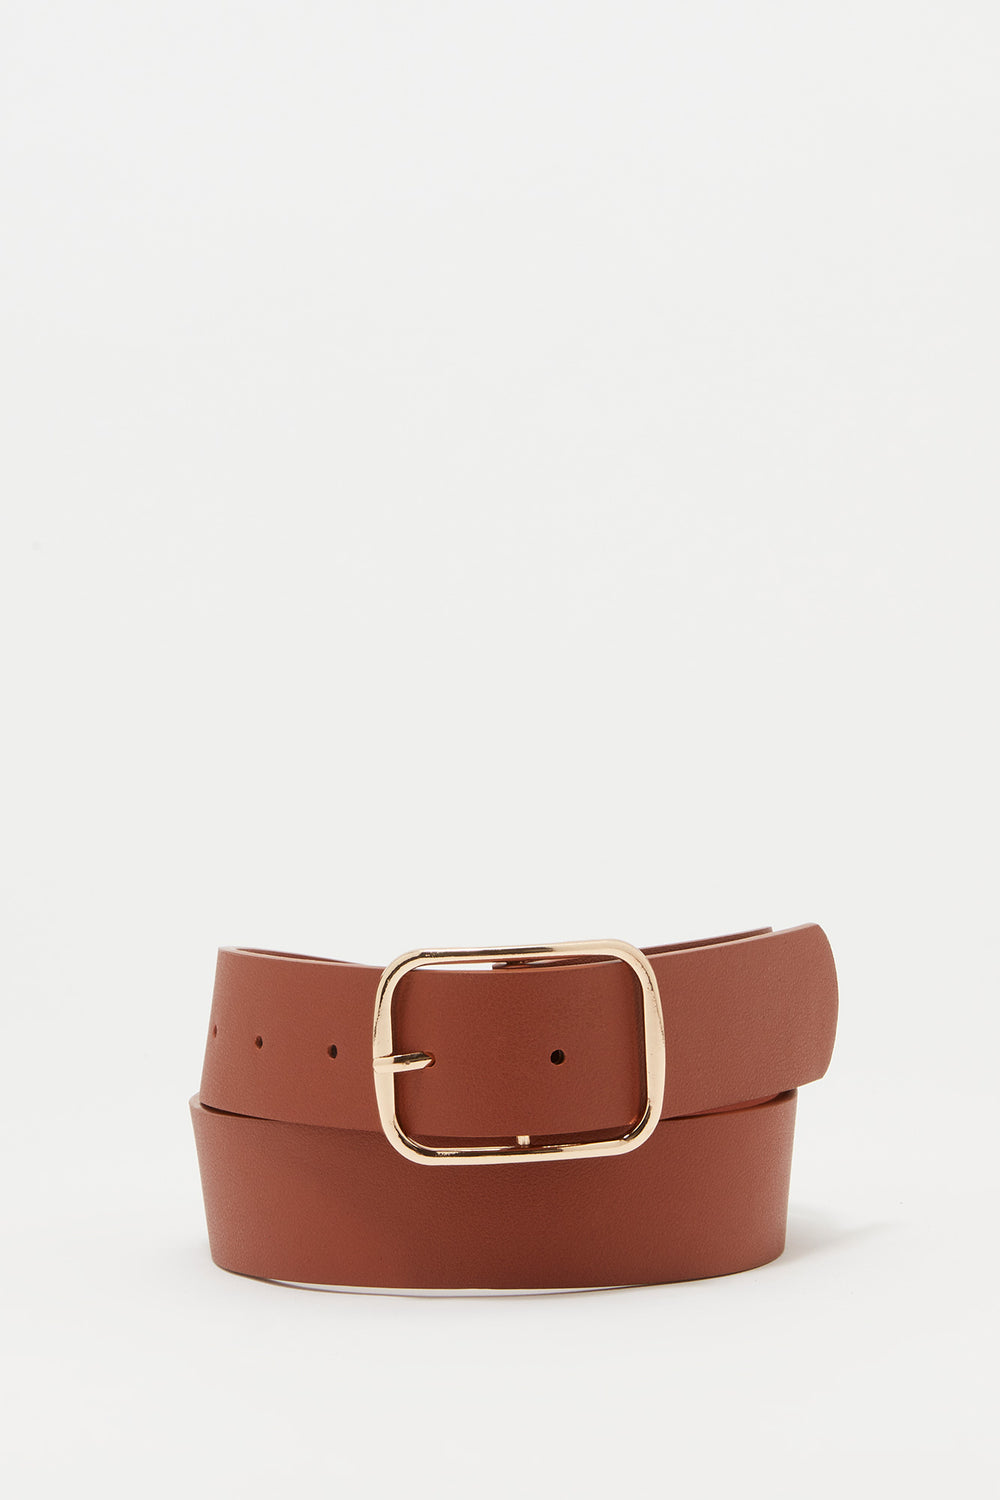 Rectangle Buckle Faux-Leather Belt Camel